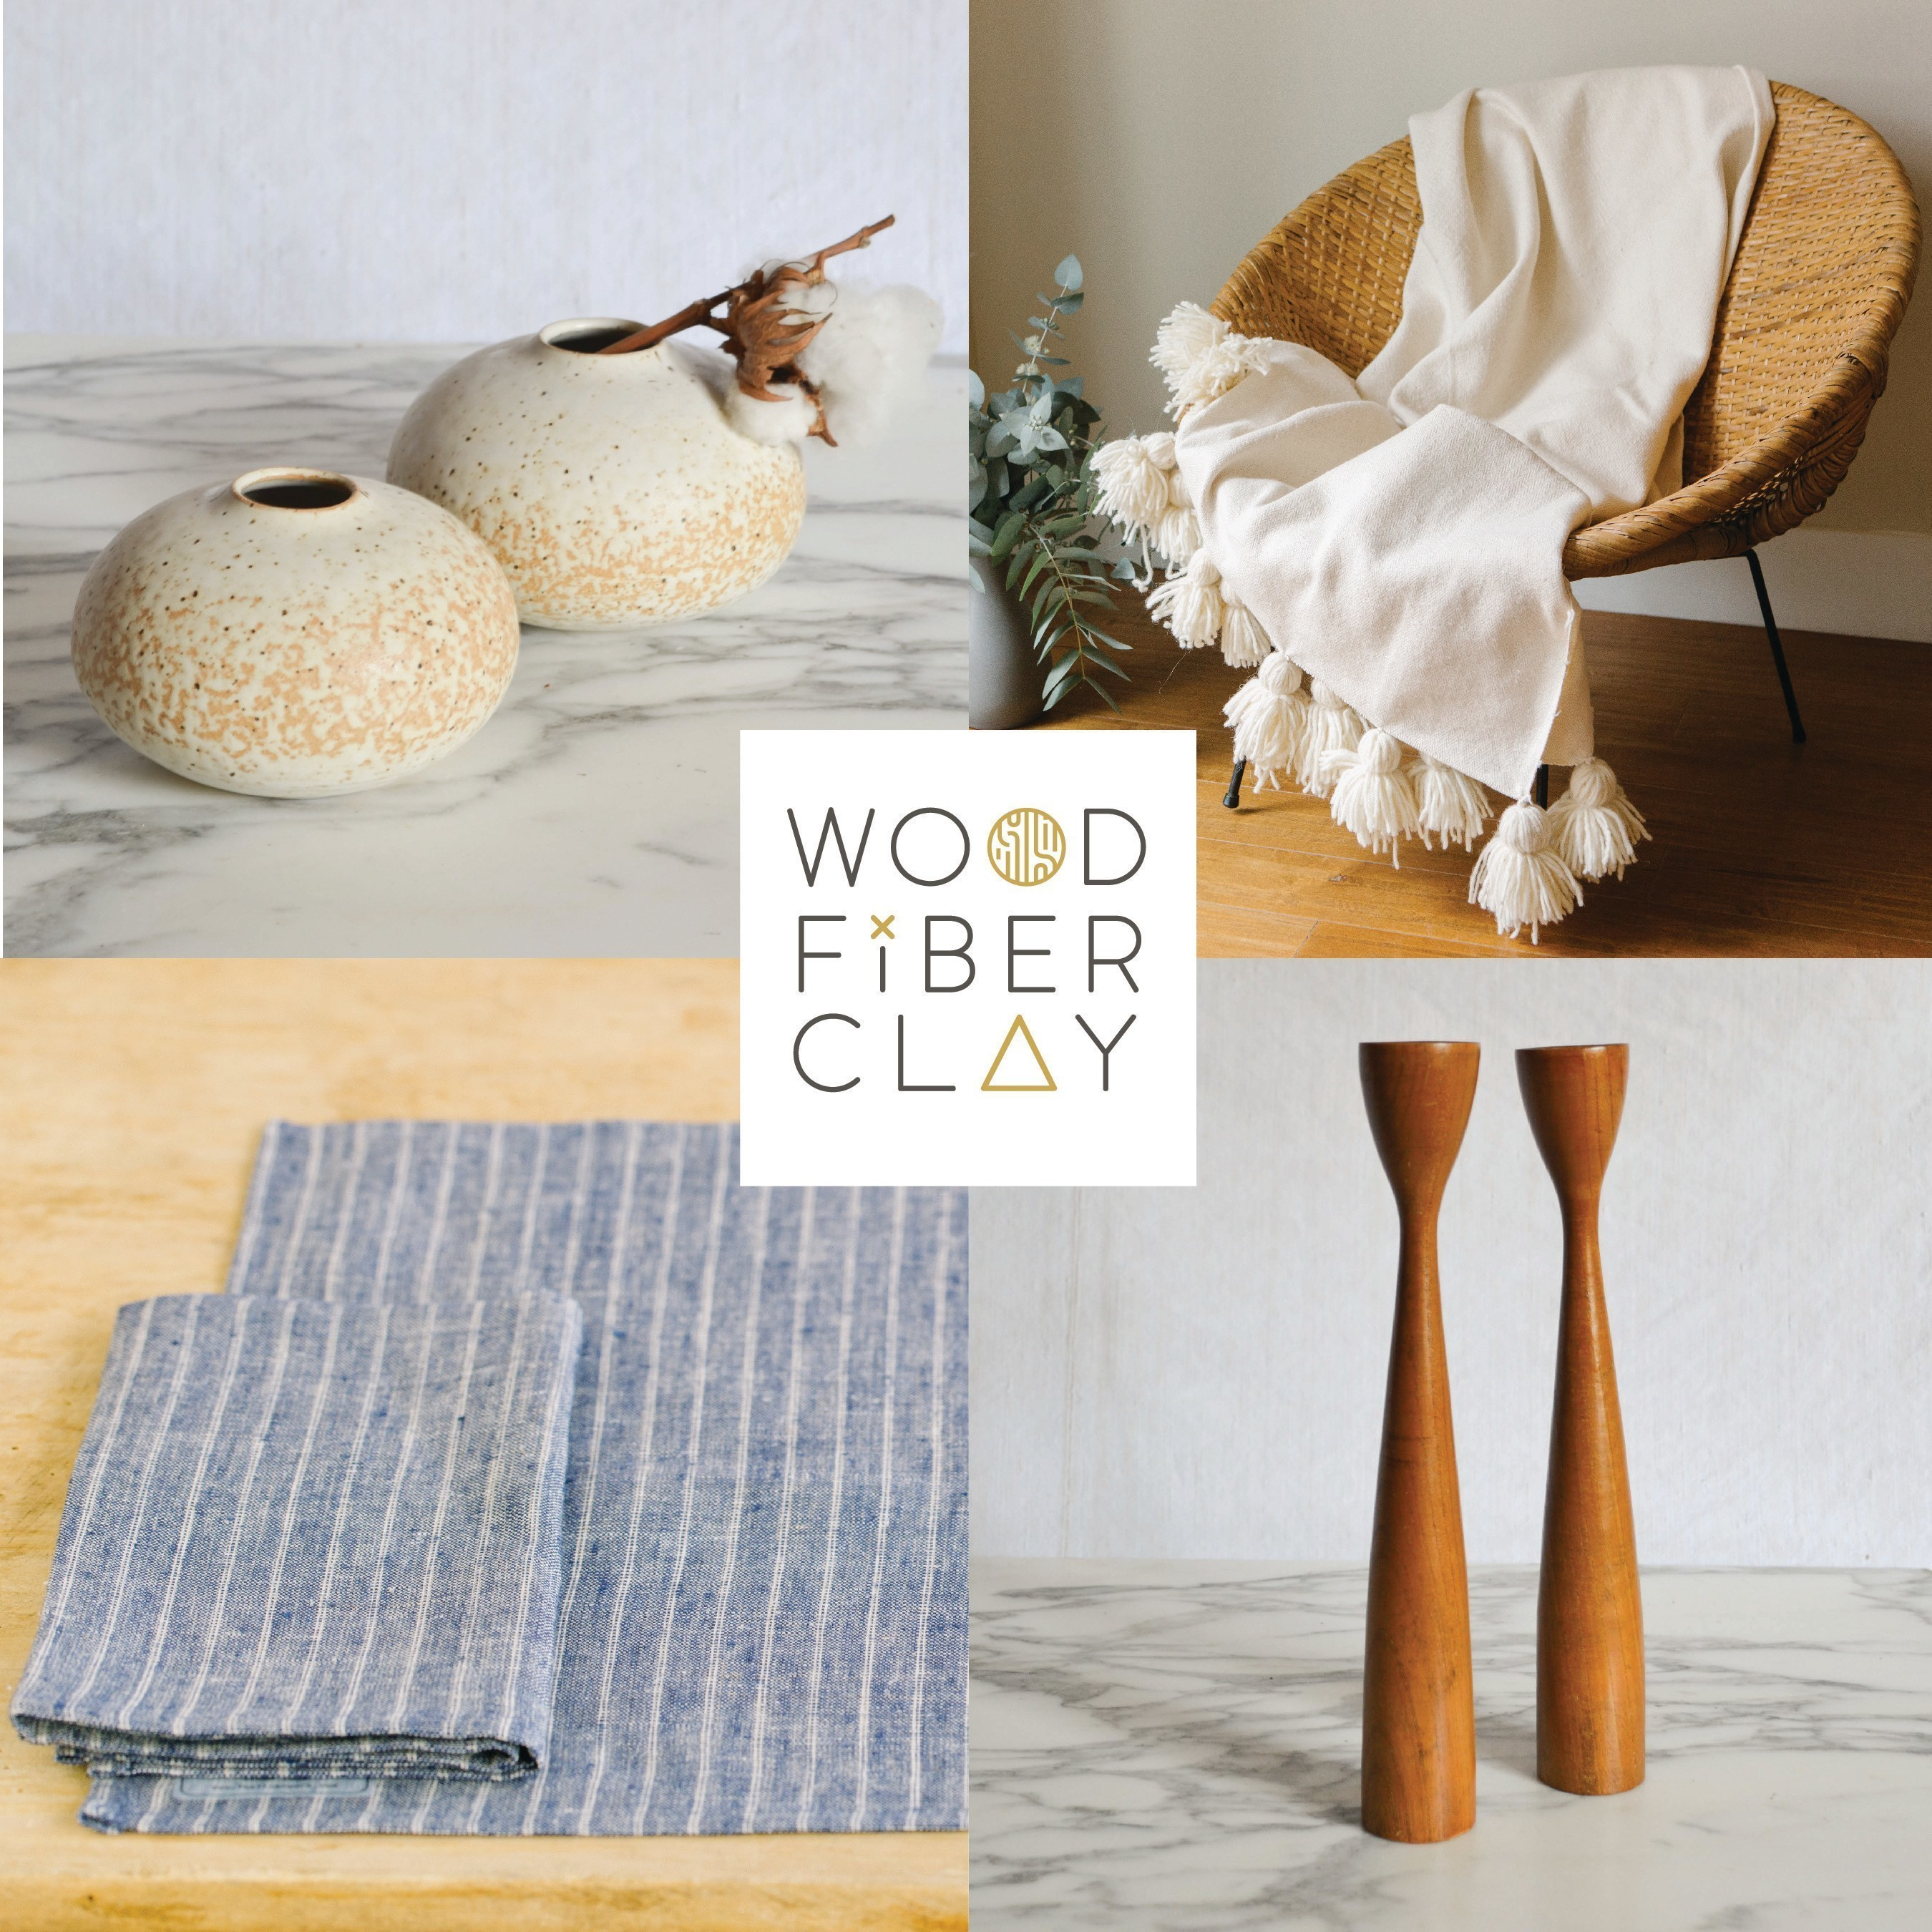 Wood Fiber Clay Launches New Online Homewares Store